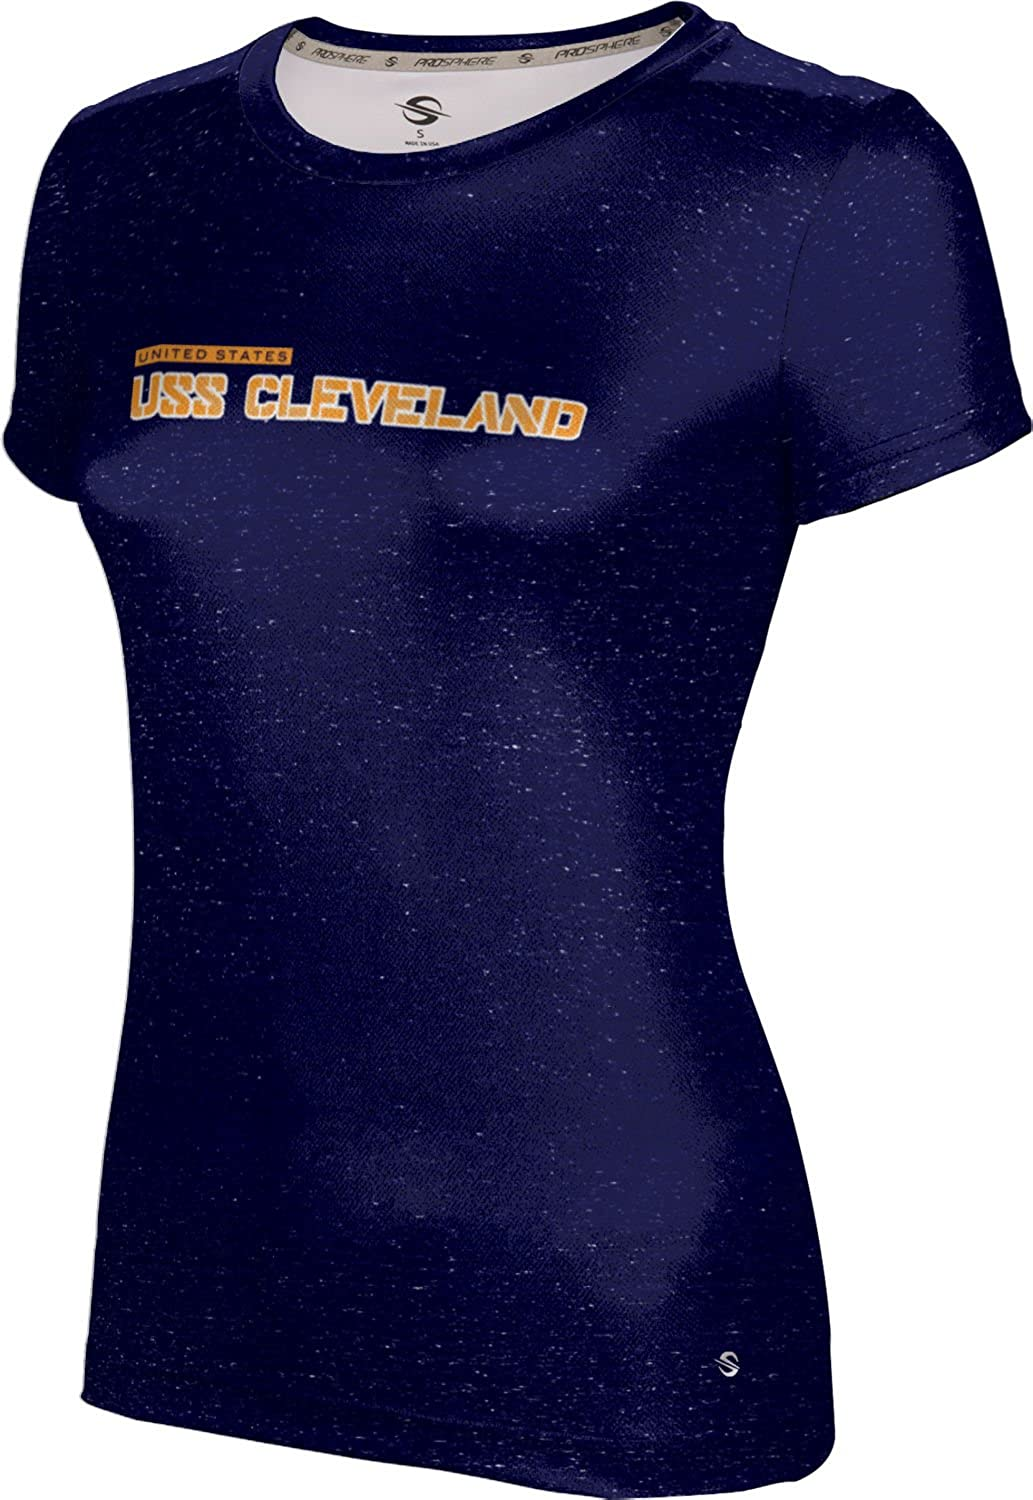 ProSphere Women's USS Cleveland Military Heather Tech Tee